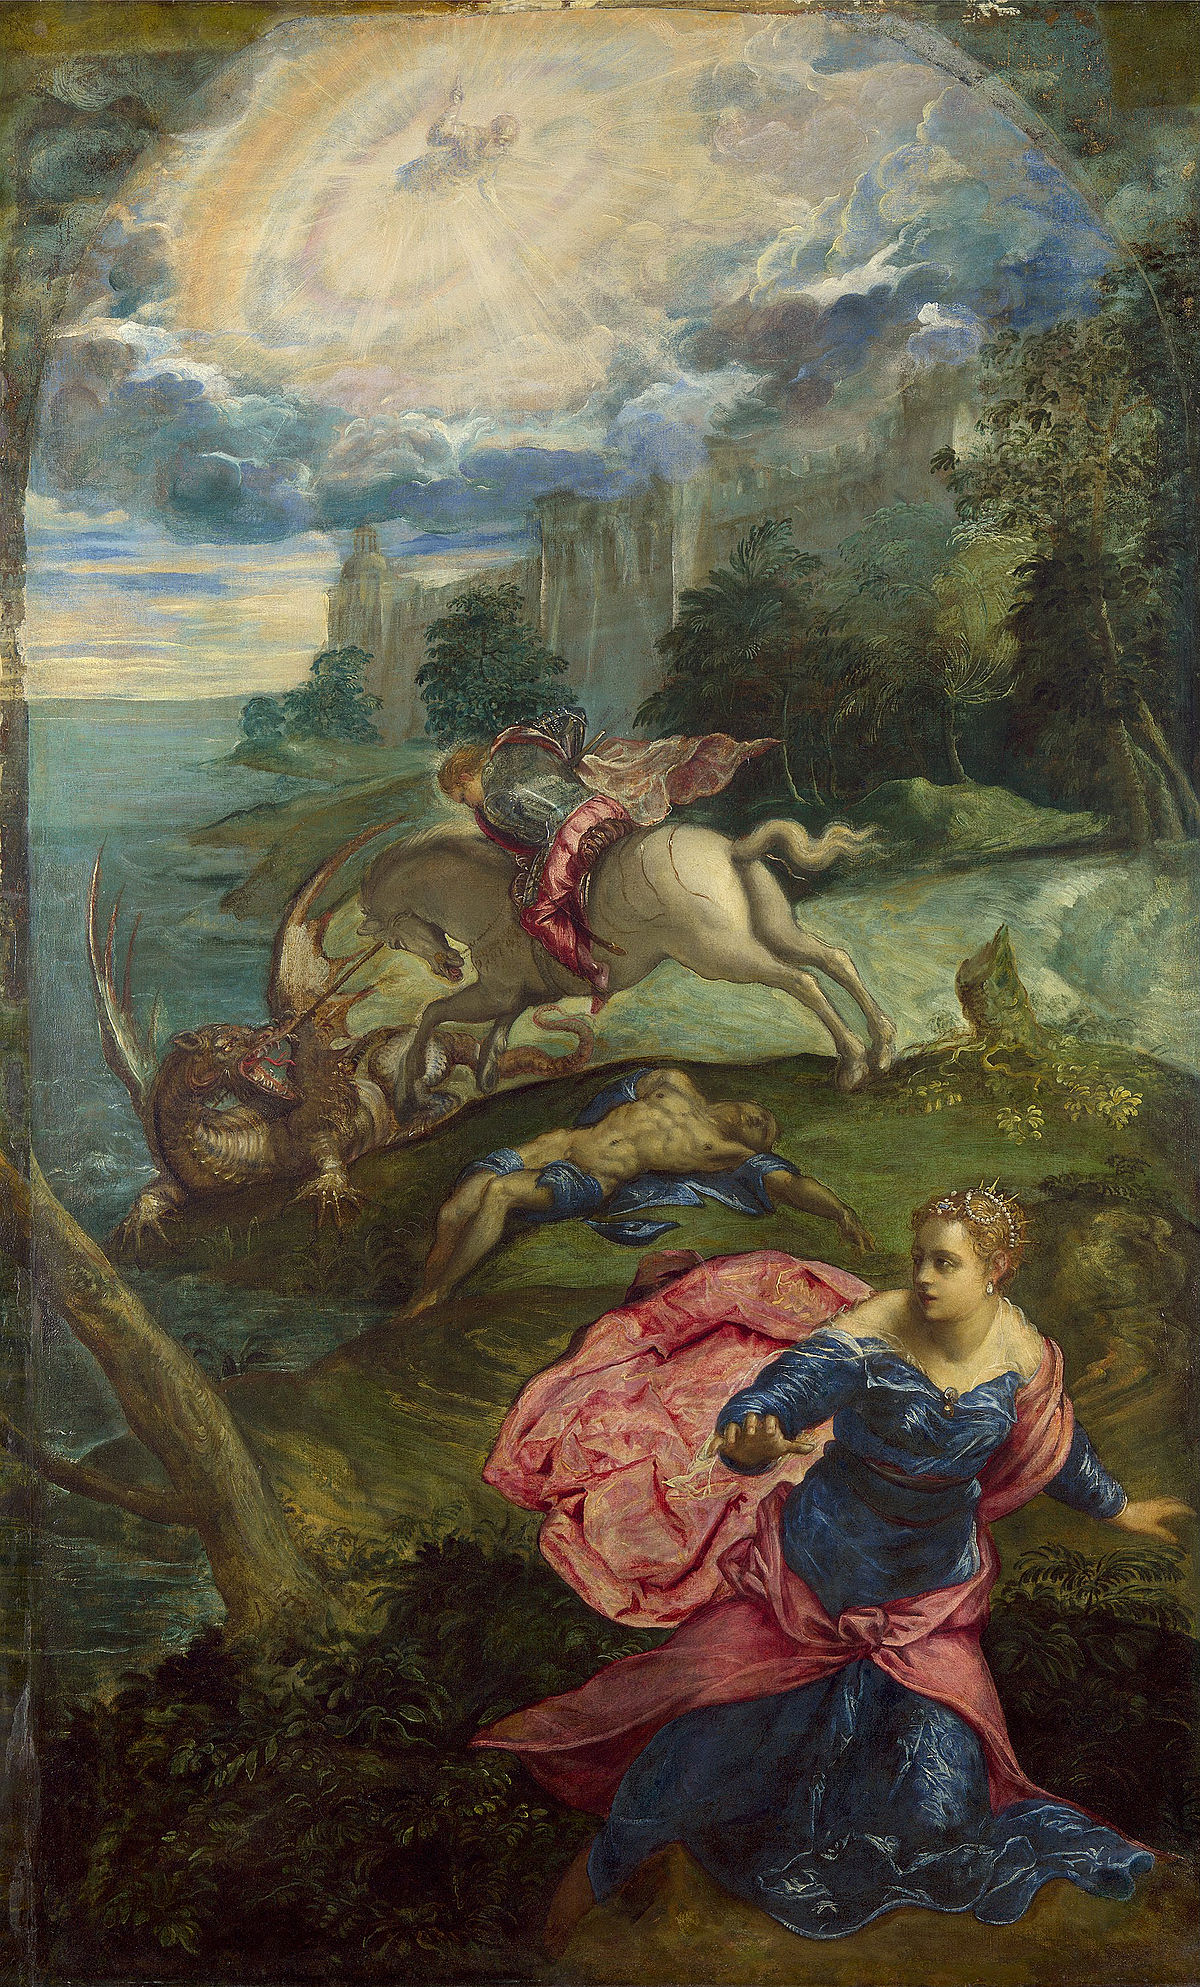 File:Jacopo Tintoretto - Saint George and the Dragon - Google Art Project.jpg - Wikipedia